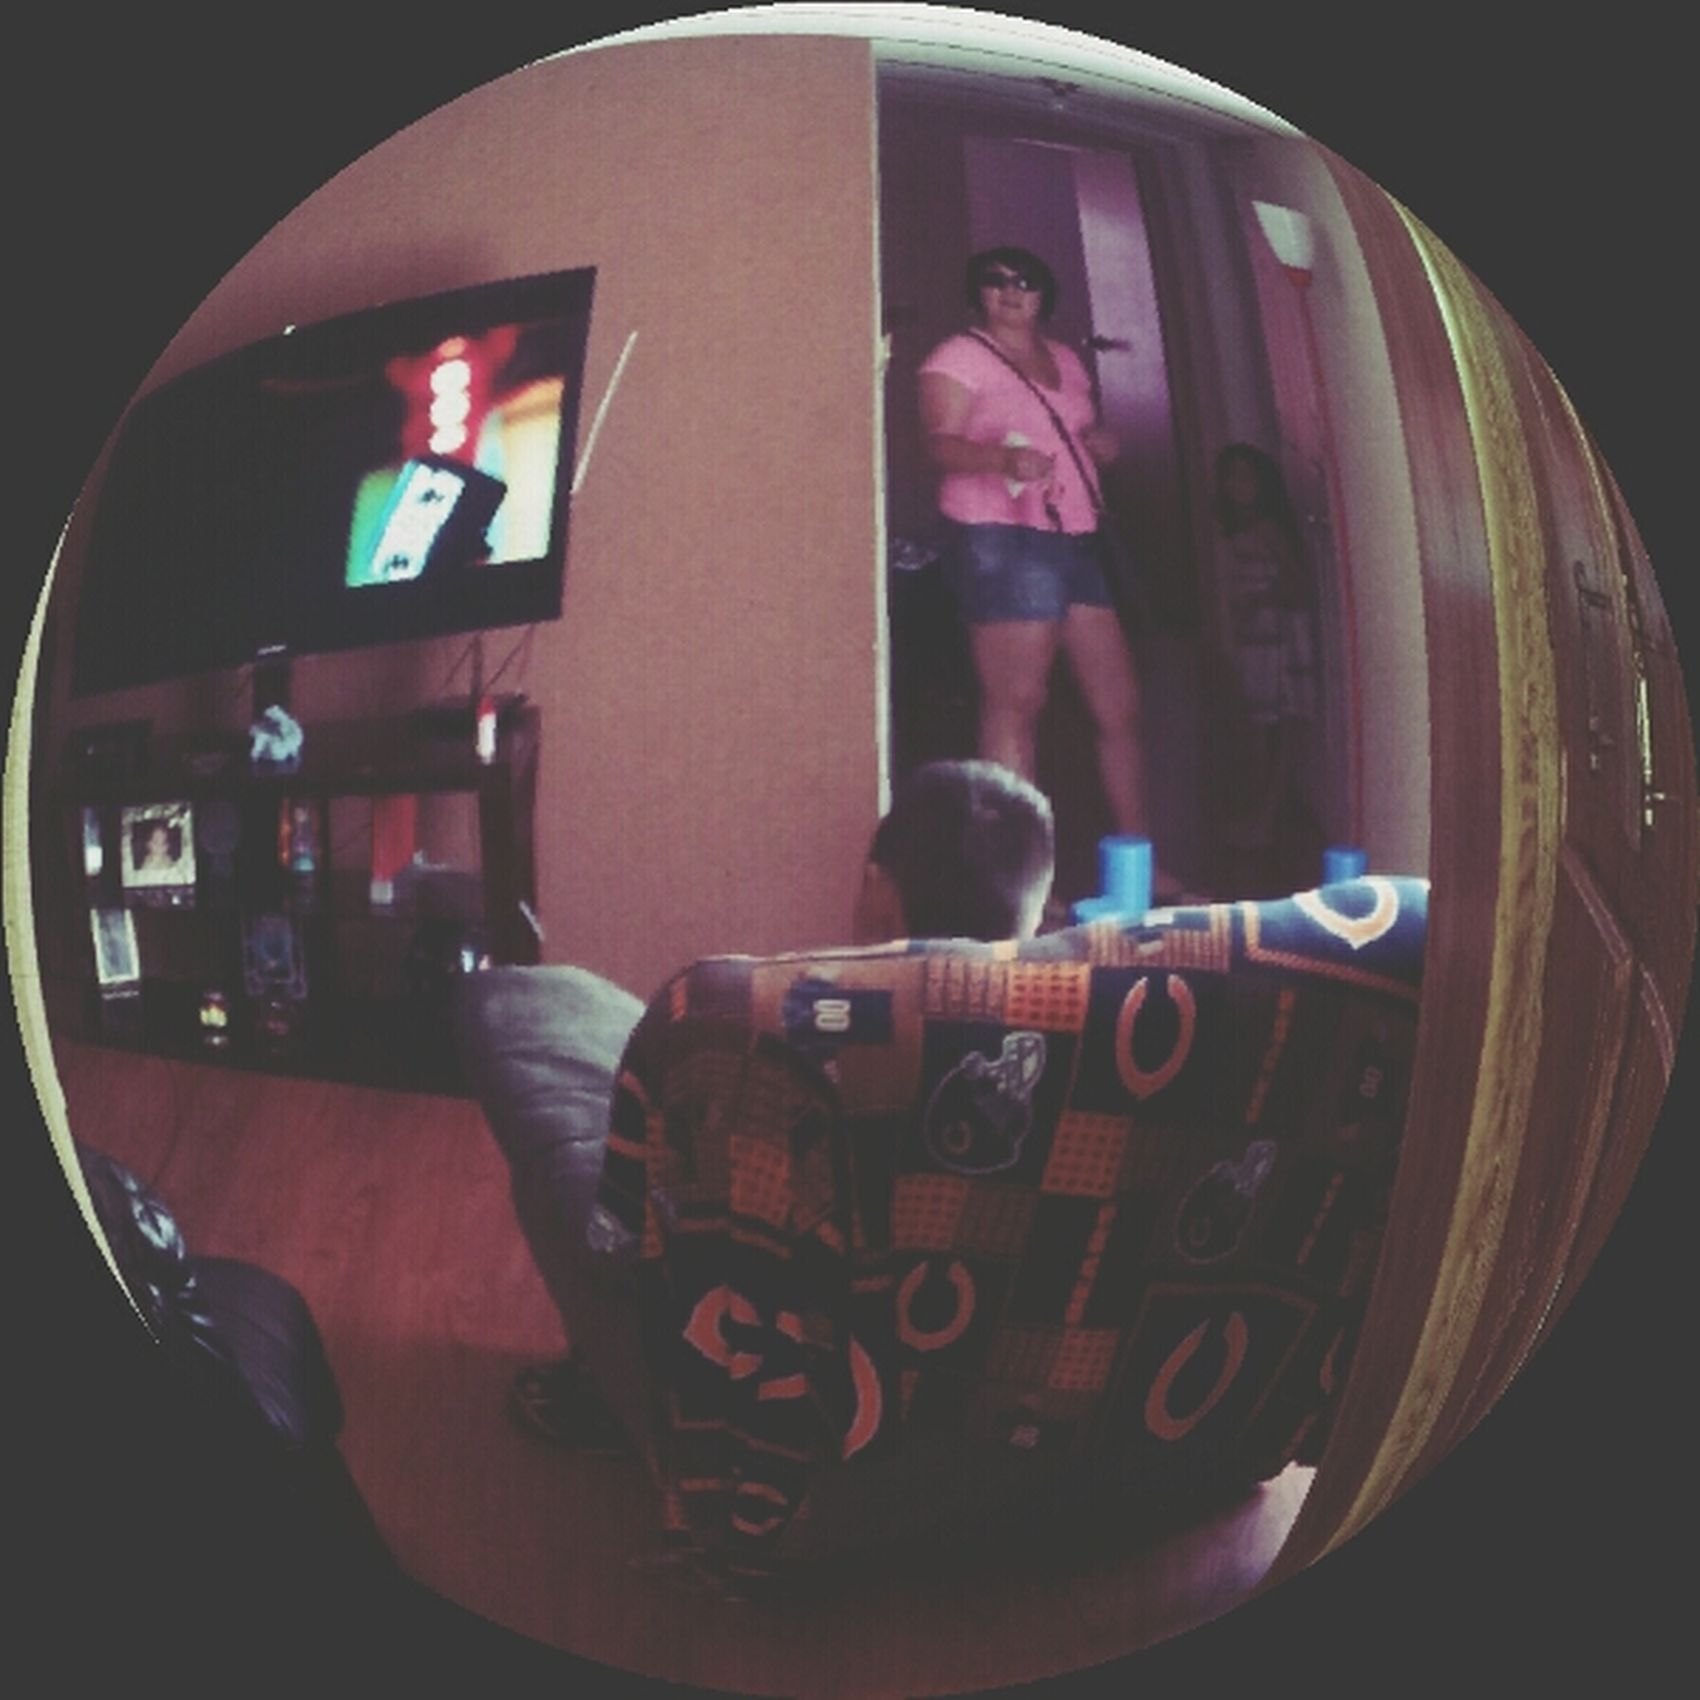 Trying out the good ol fisheye